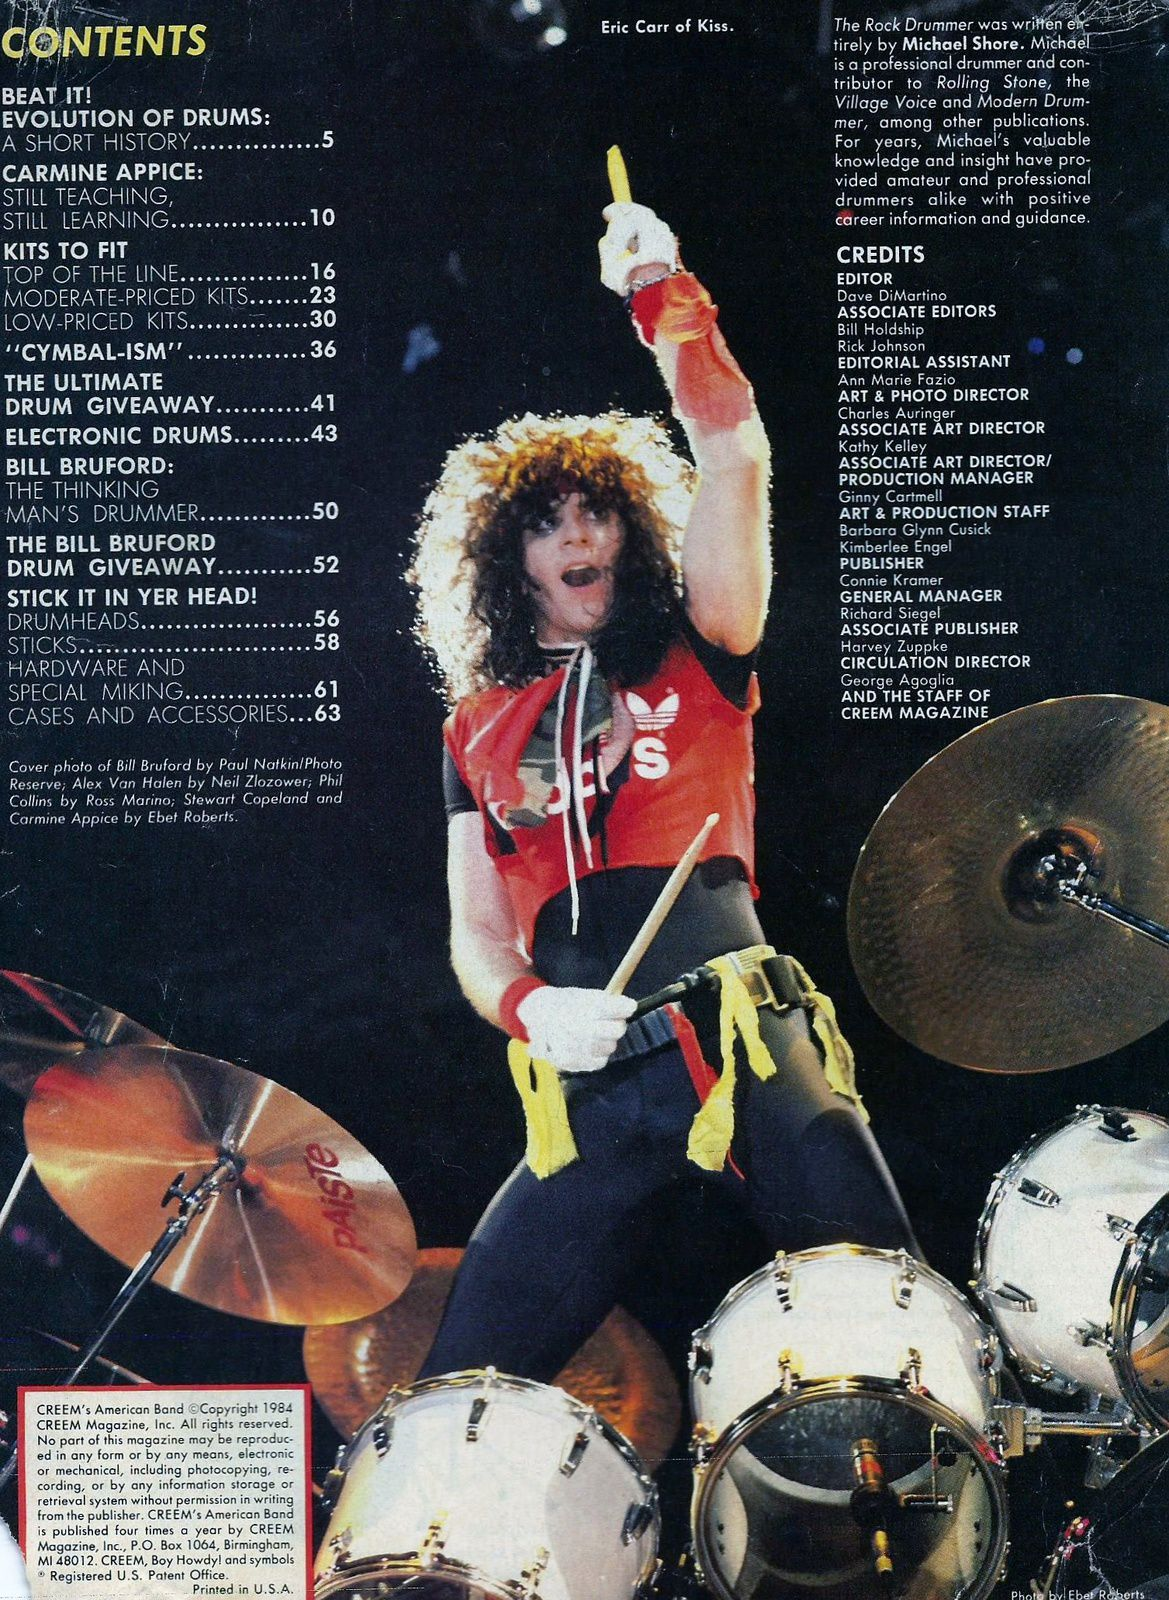 Eric Carr, KISS - photo by Ebel Roberts